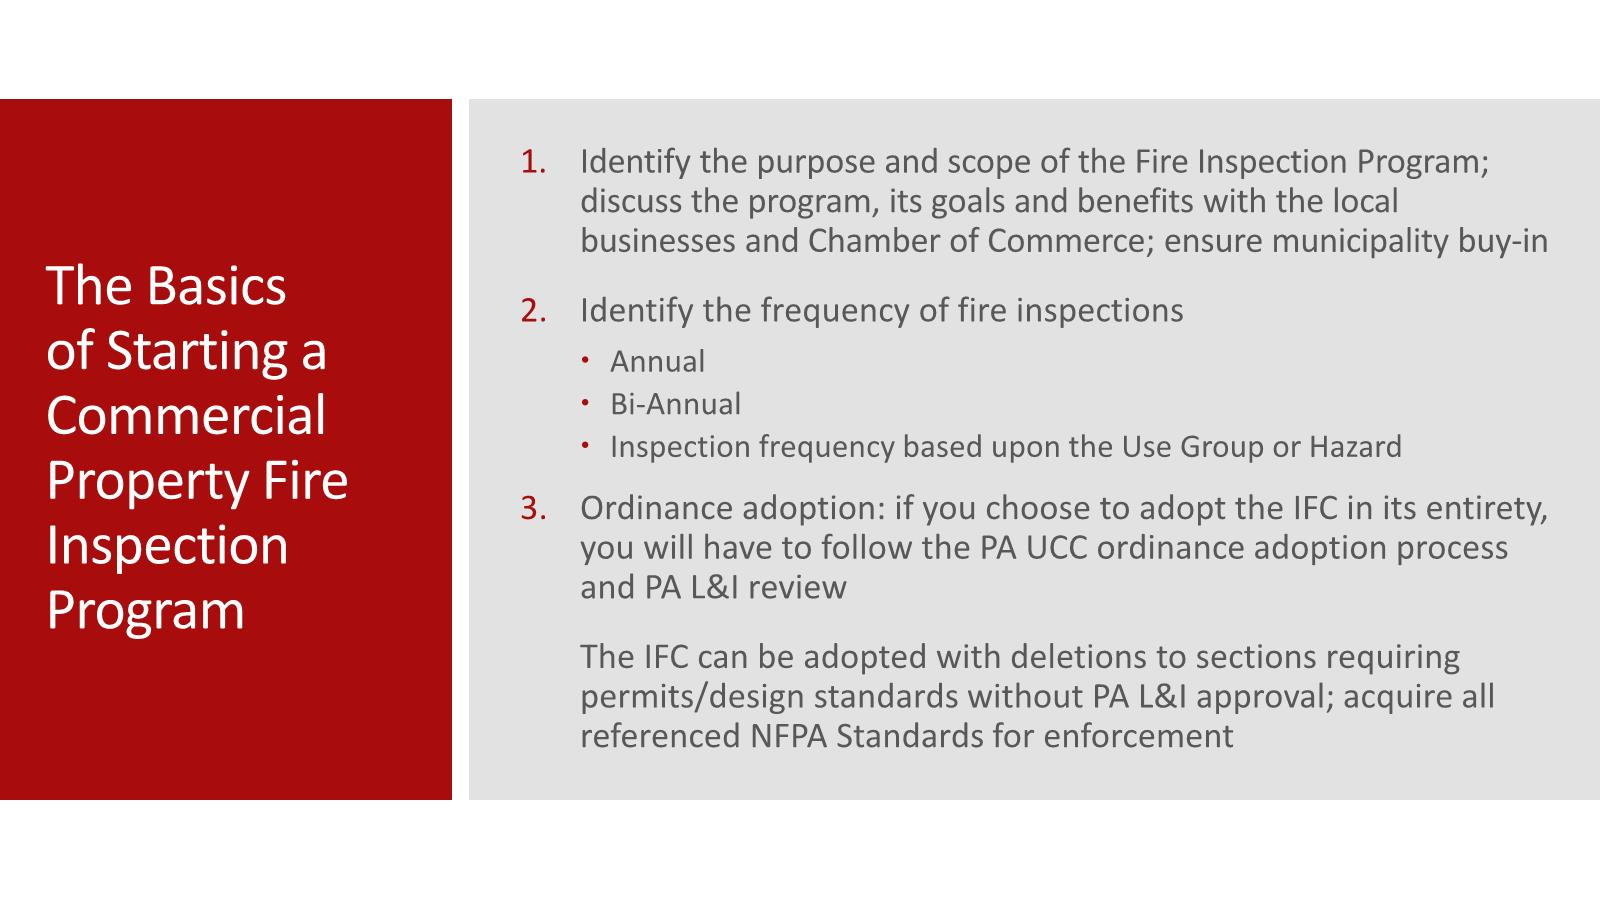 Commercial-Property-Fire-Inspections Page 018.jpg